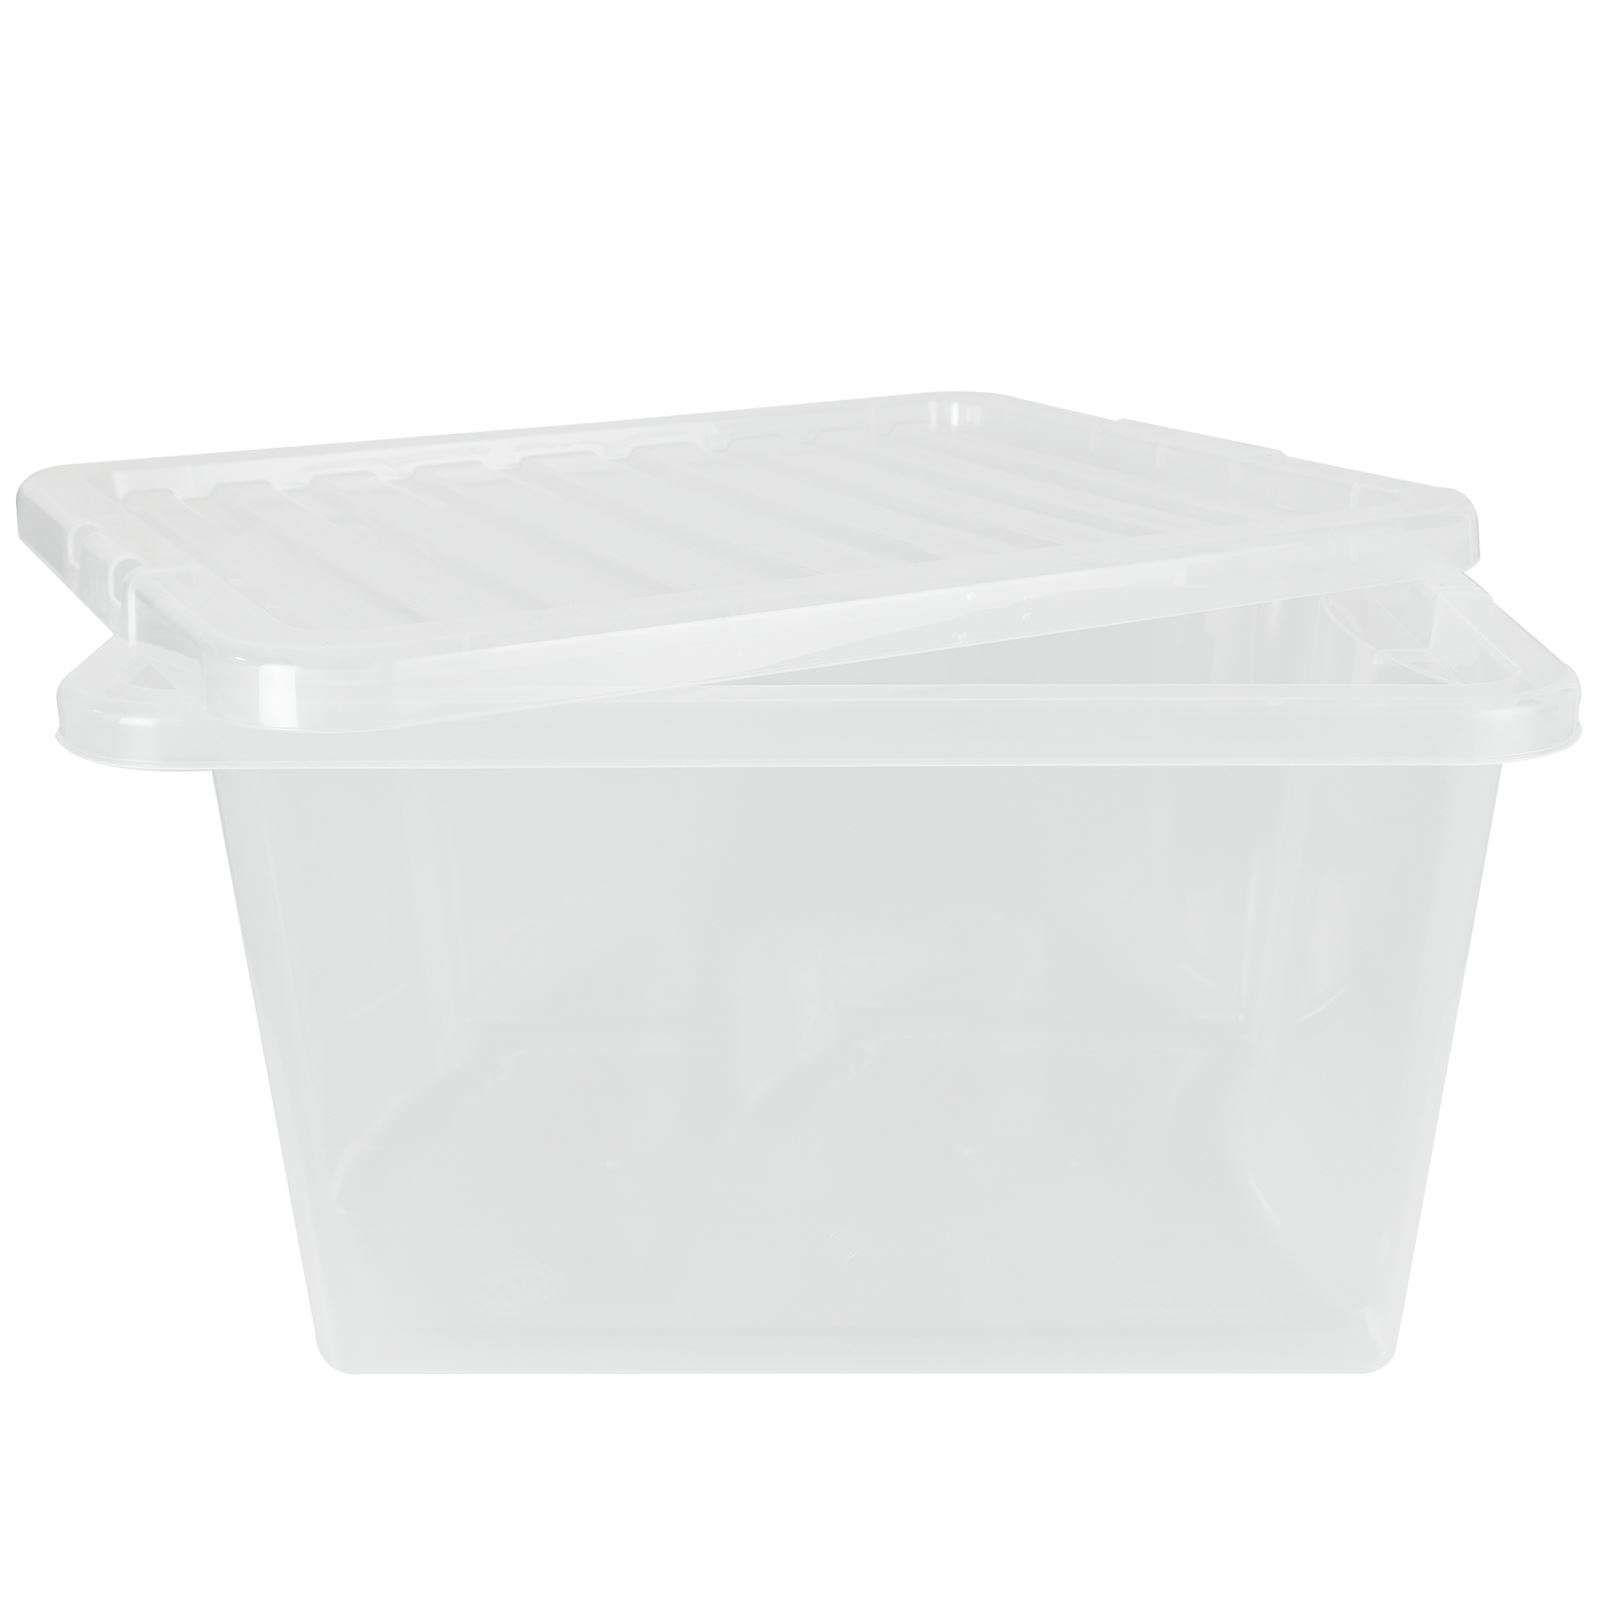 Wham-Crystal-Clear-Plastic-Storage-Box-Secure-Clip-on-Lid-Under-Bed-Space-Save thumbnail 15